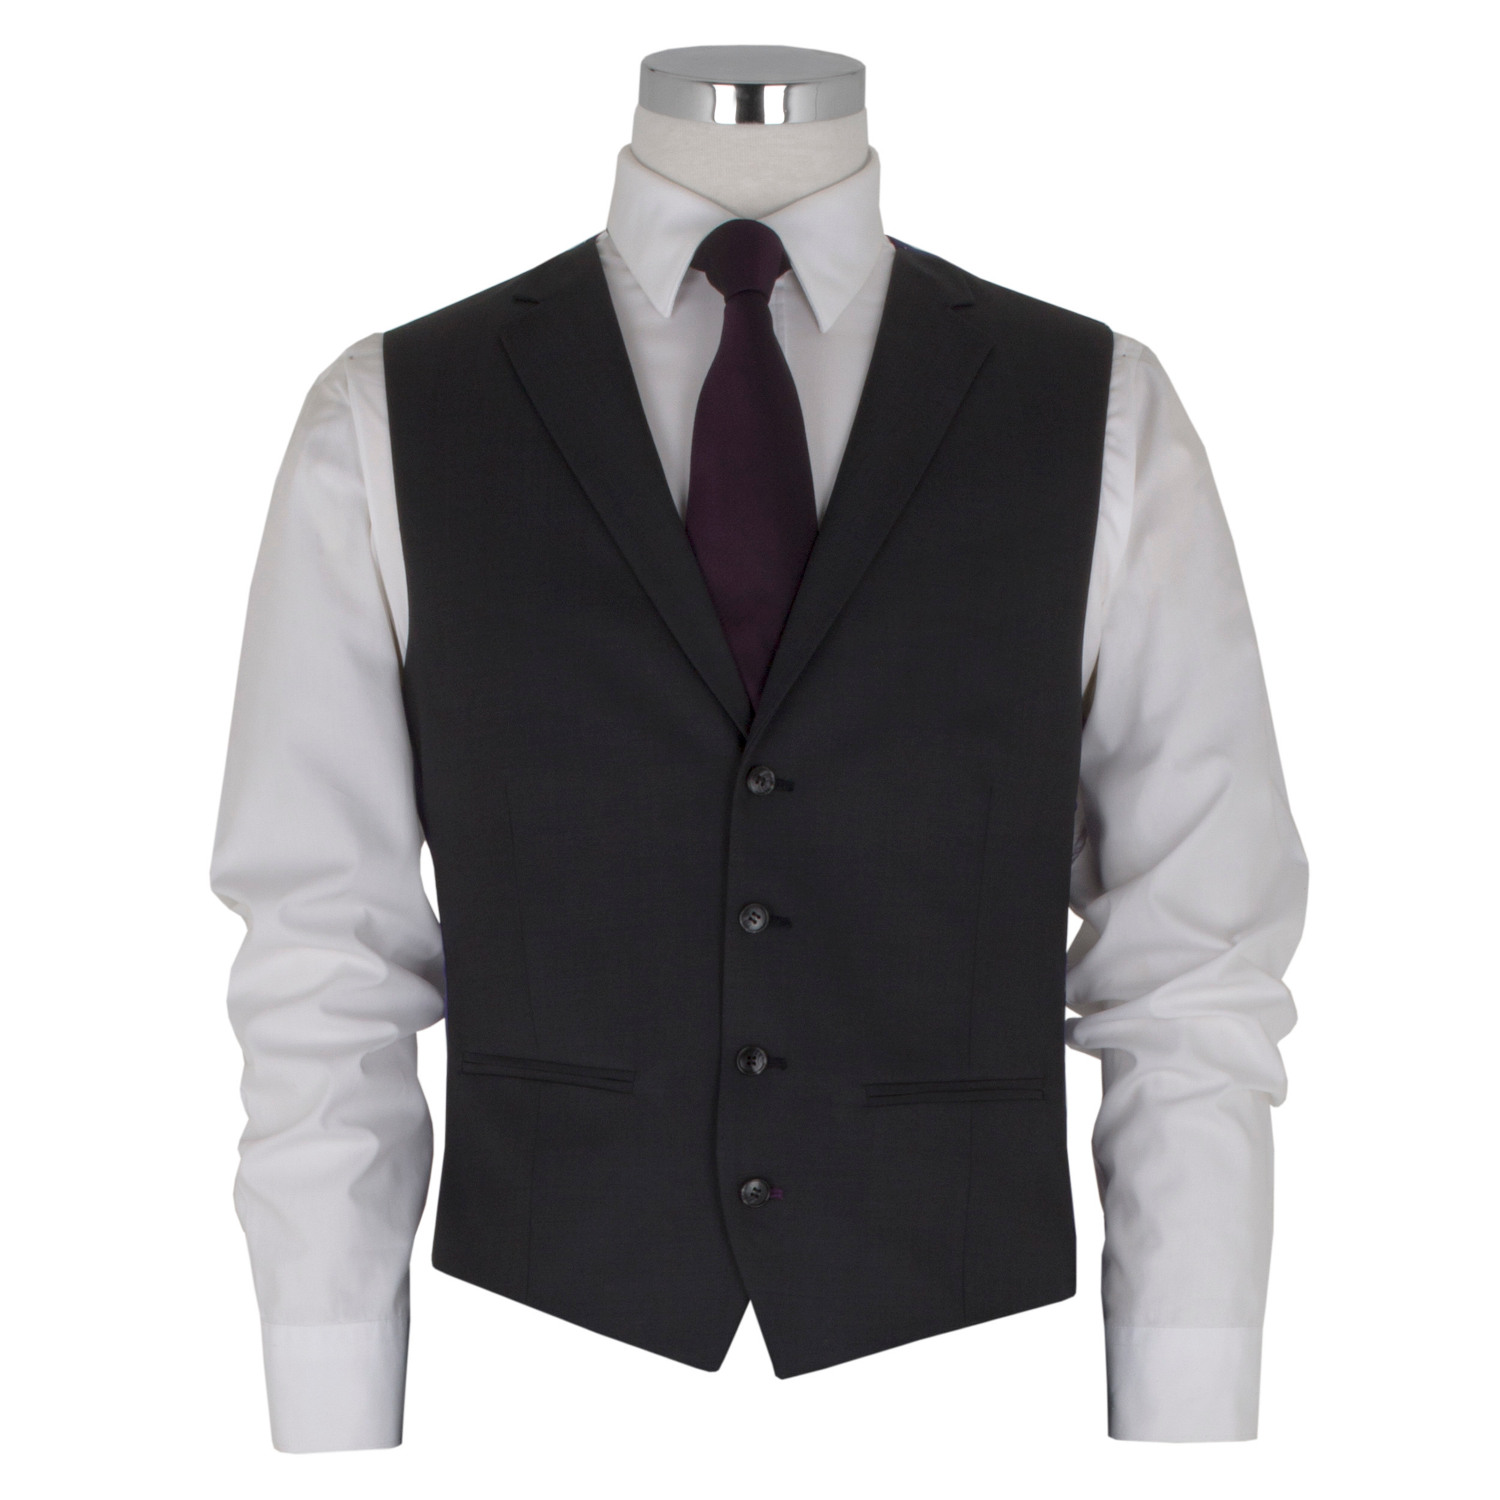 Charcoal Tailored 3 Piece Suit to Hire